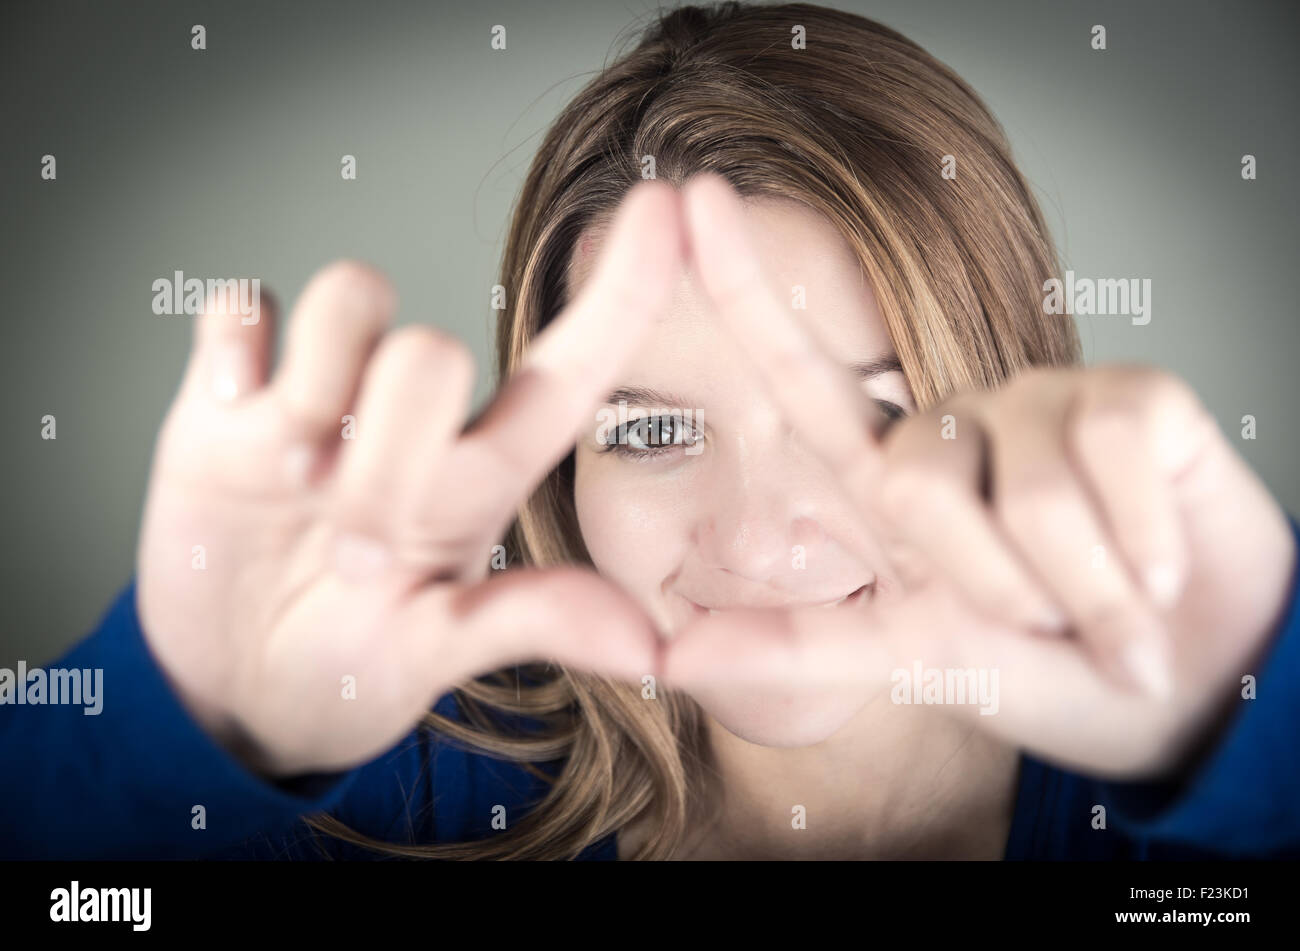 Closeup Portrait Of Cute Young Teen Girl Making A Triangle With